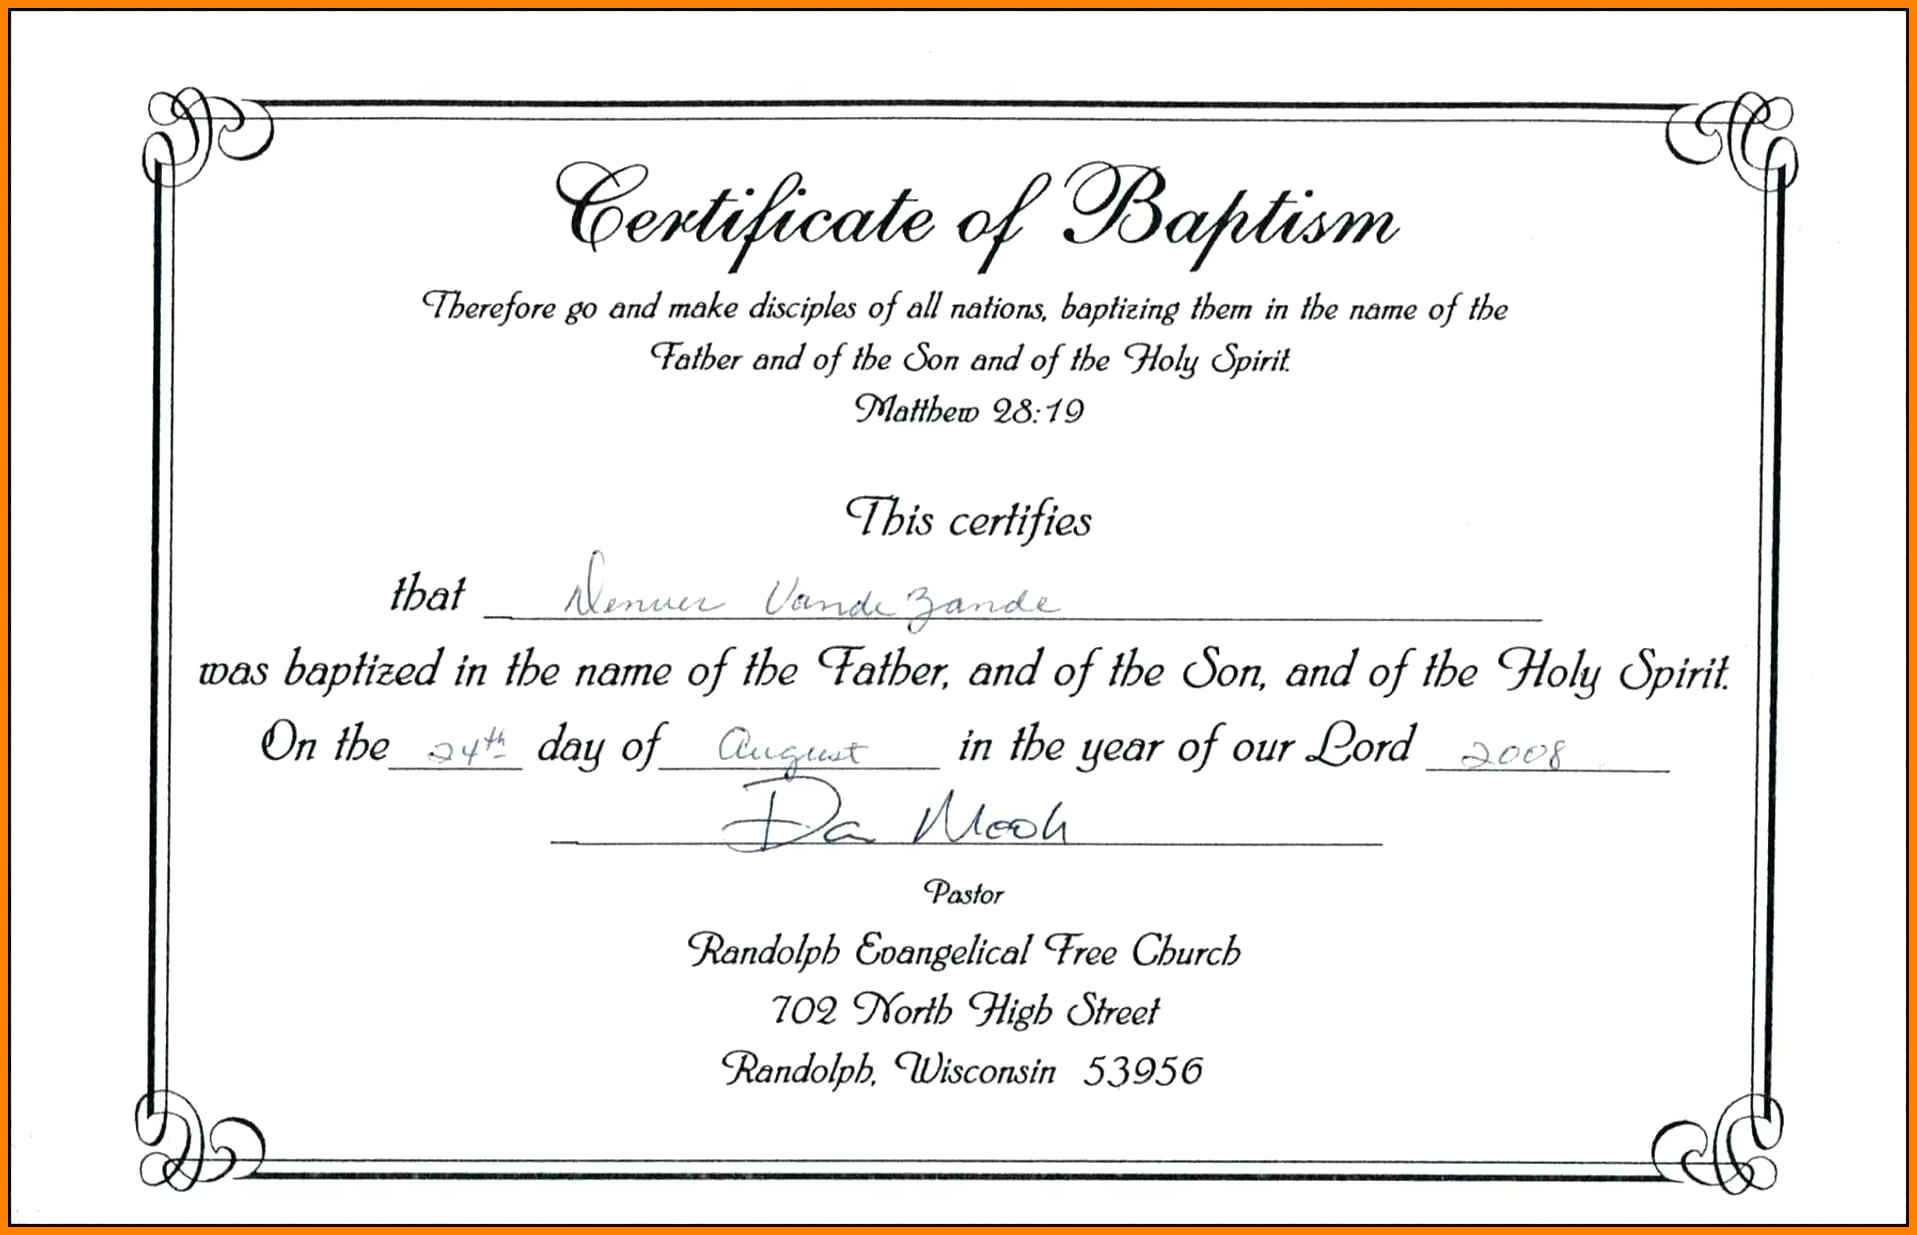 The Awesome Free Printable Certificate Of Baptism  Mult with Quality Christian Baptism Certificate Template